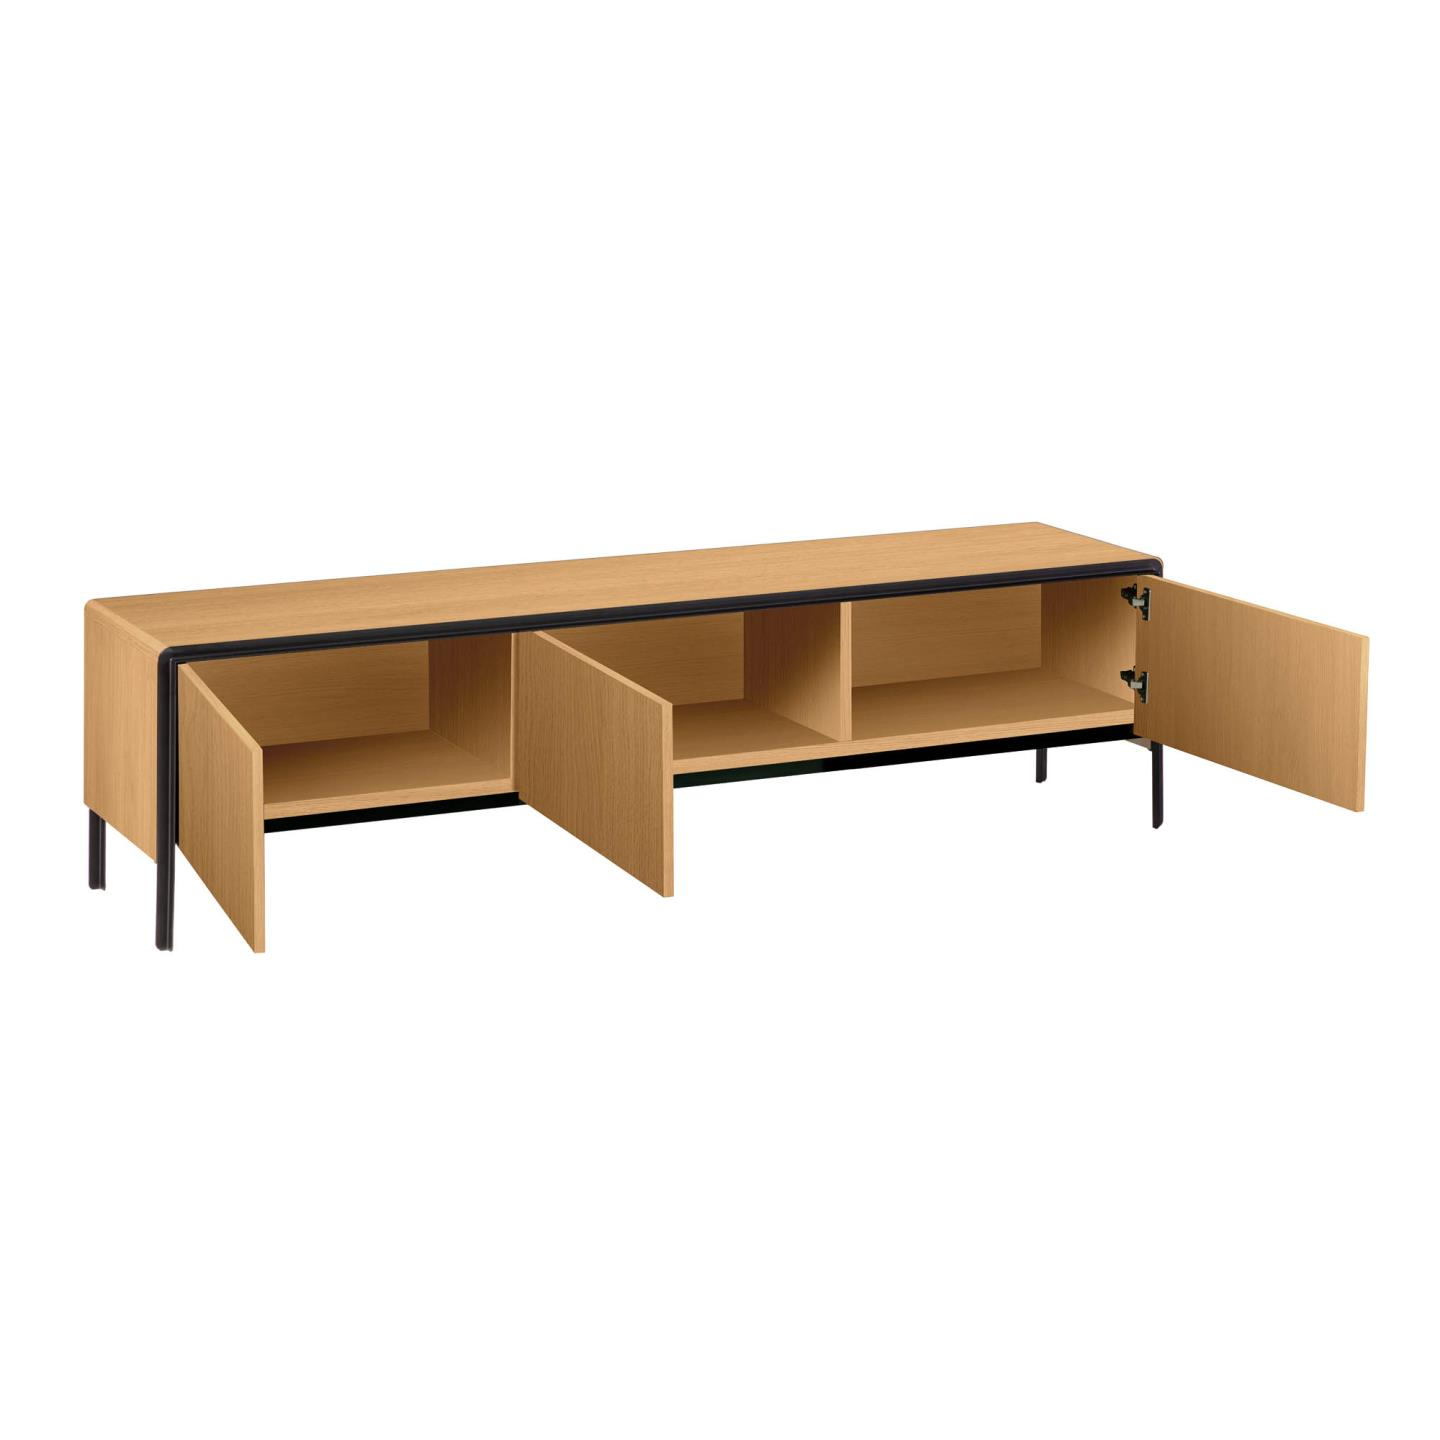 Nadyria oak wood TV Stand  180 x 50 cm